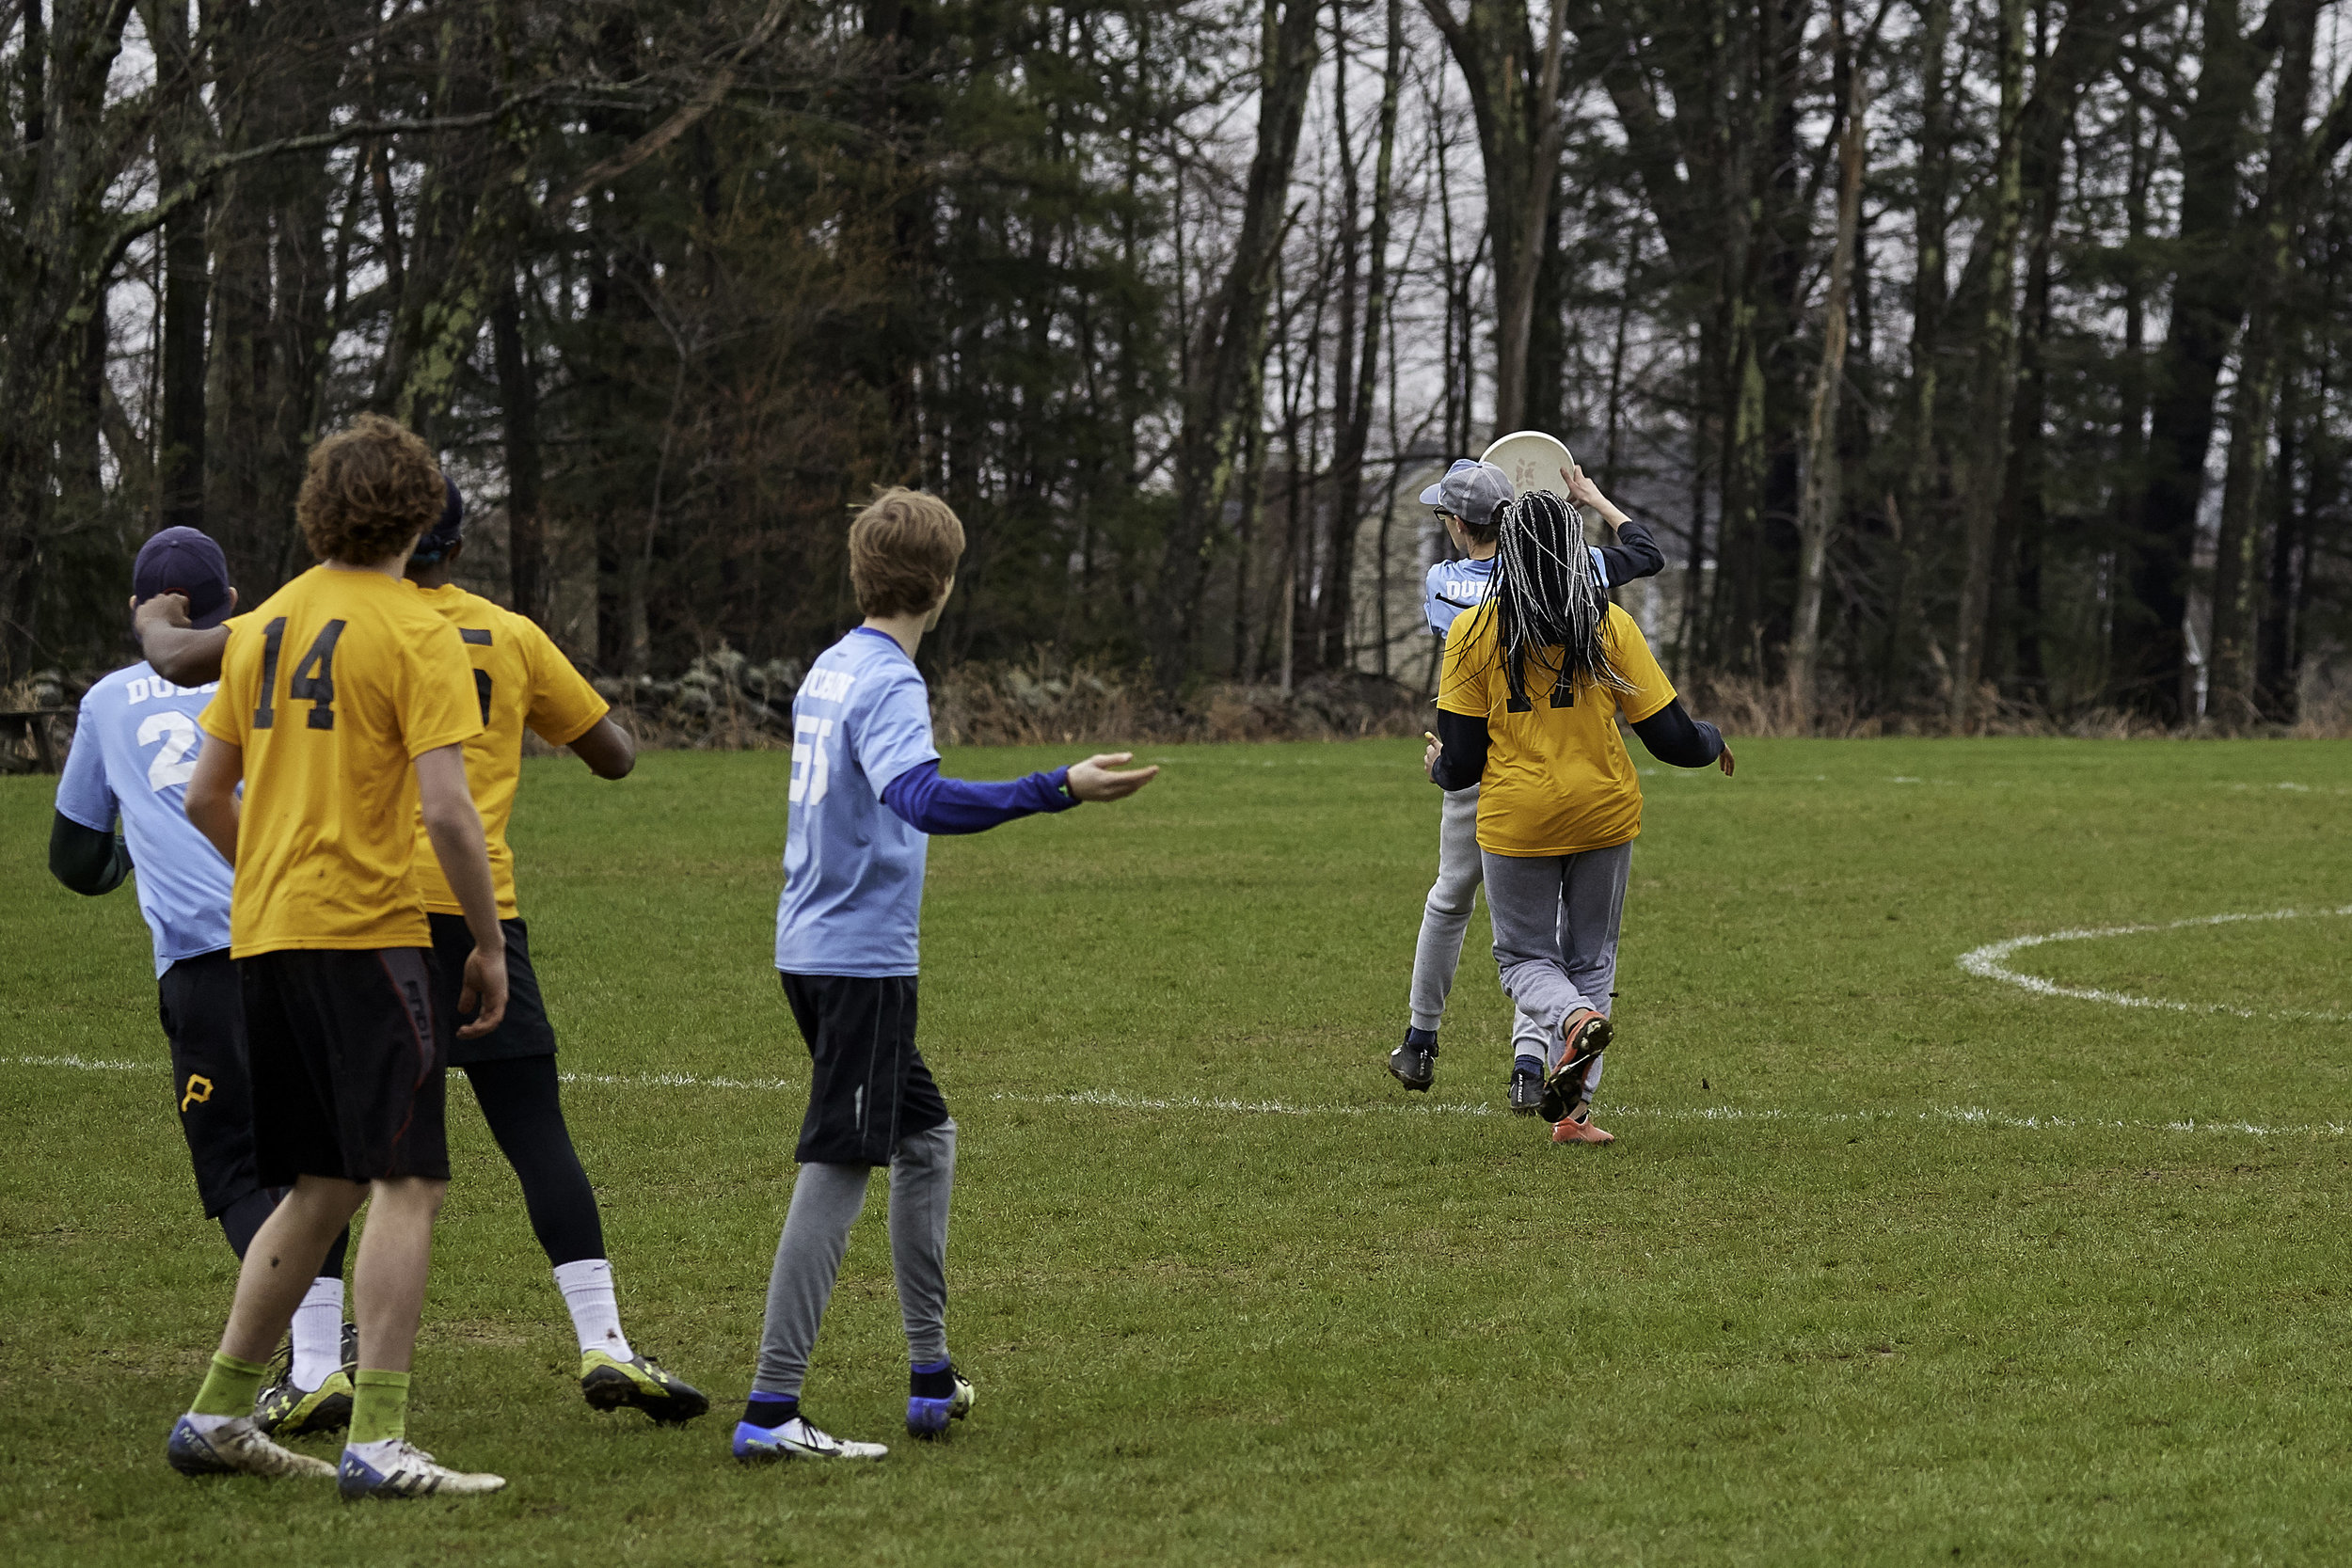 Ultimate Frisbee vs. Eagle Hill School - May 3, 2019 - 188322.jpg